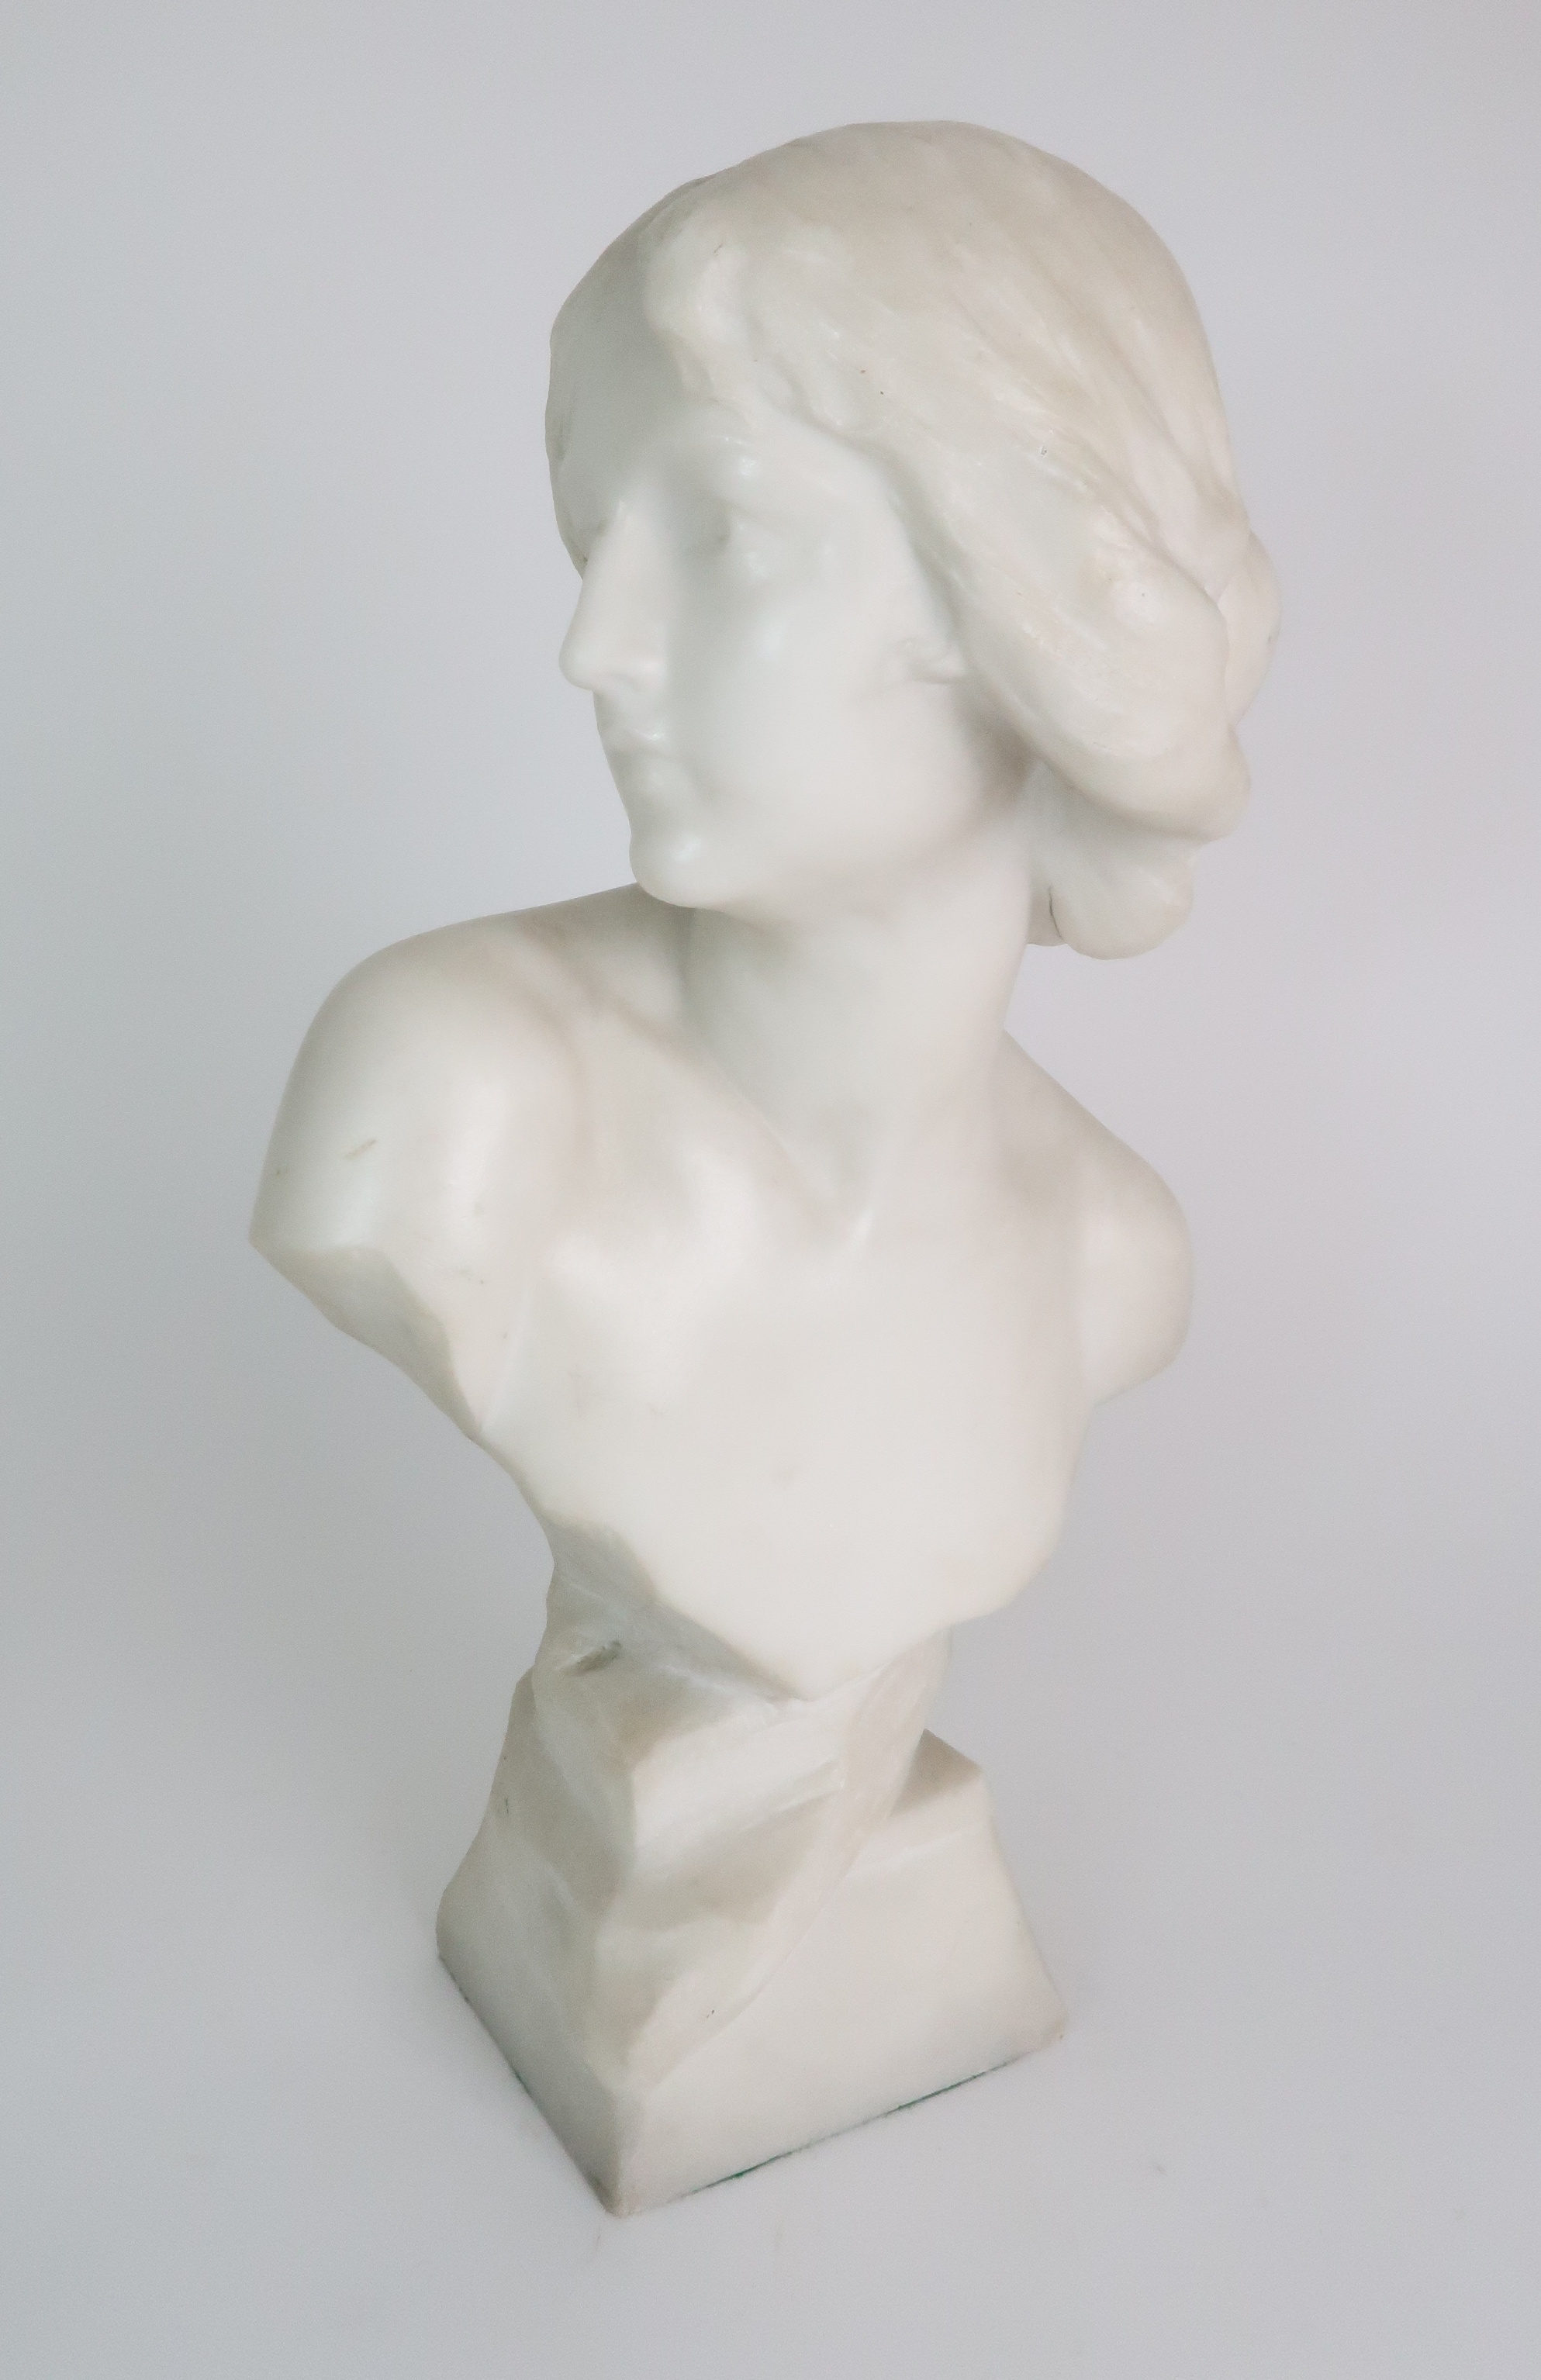 AN ALABASTER BUST OF A YOUNG WOMAN upon pedestal base, 39cm high Condition Report: Available upon